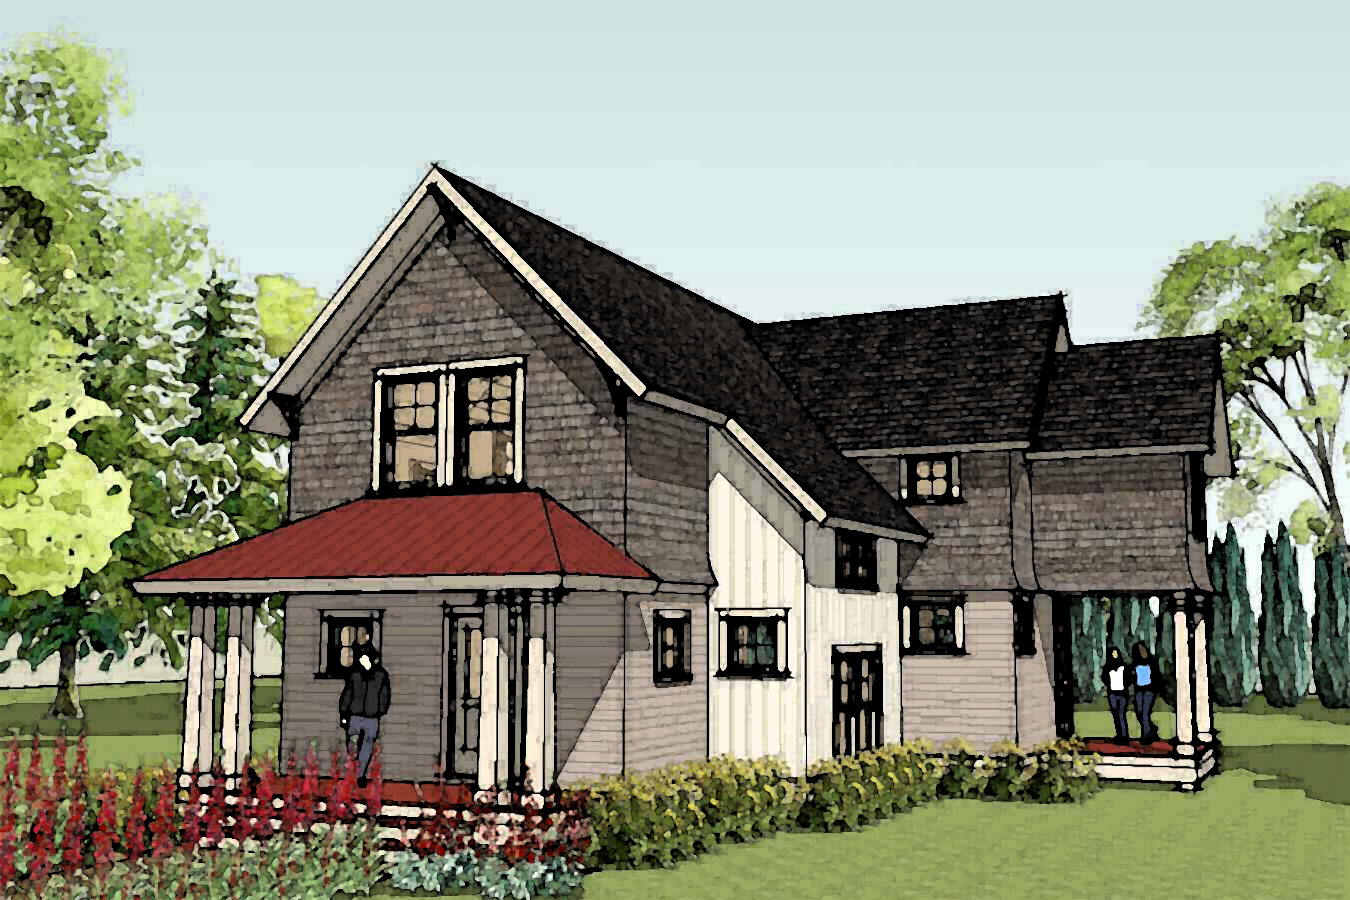 Simply Elegant Home Designs Blog: New Unique Small House Plan